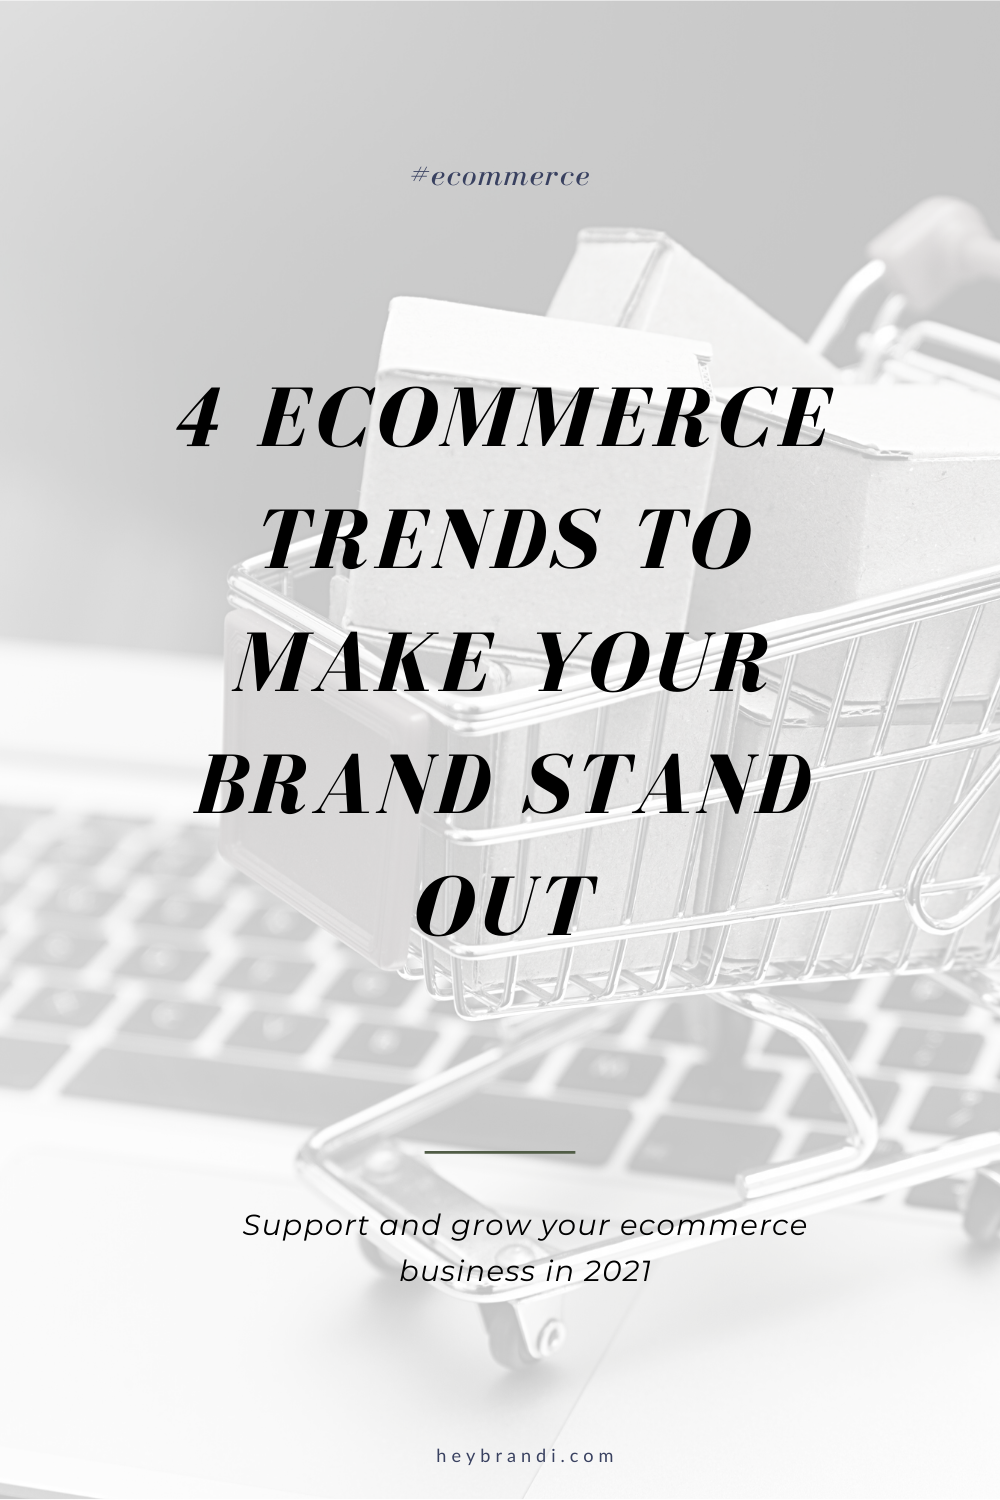 4 eCommerce trends to make your brand stand out